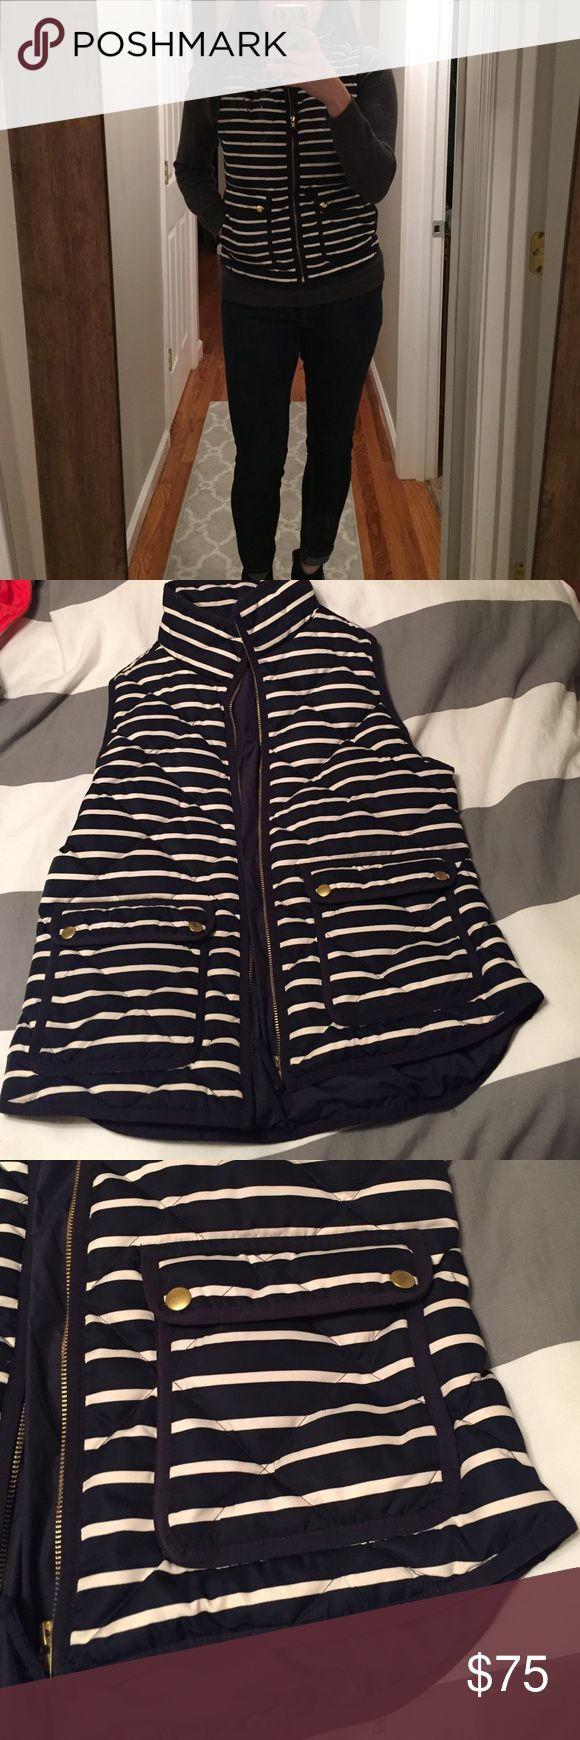 J. Crew Quilted Puffer Vest Great condition J.Crew vest. Navy and white stripes. Worn a handful of times. Such a hard decision to part with it but it doesn't get enough wear because I have so many vests. J. Crew Jackets & Coats Vests